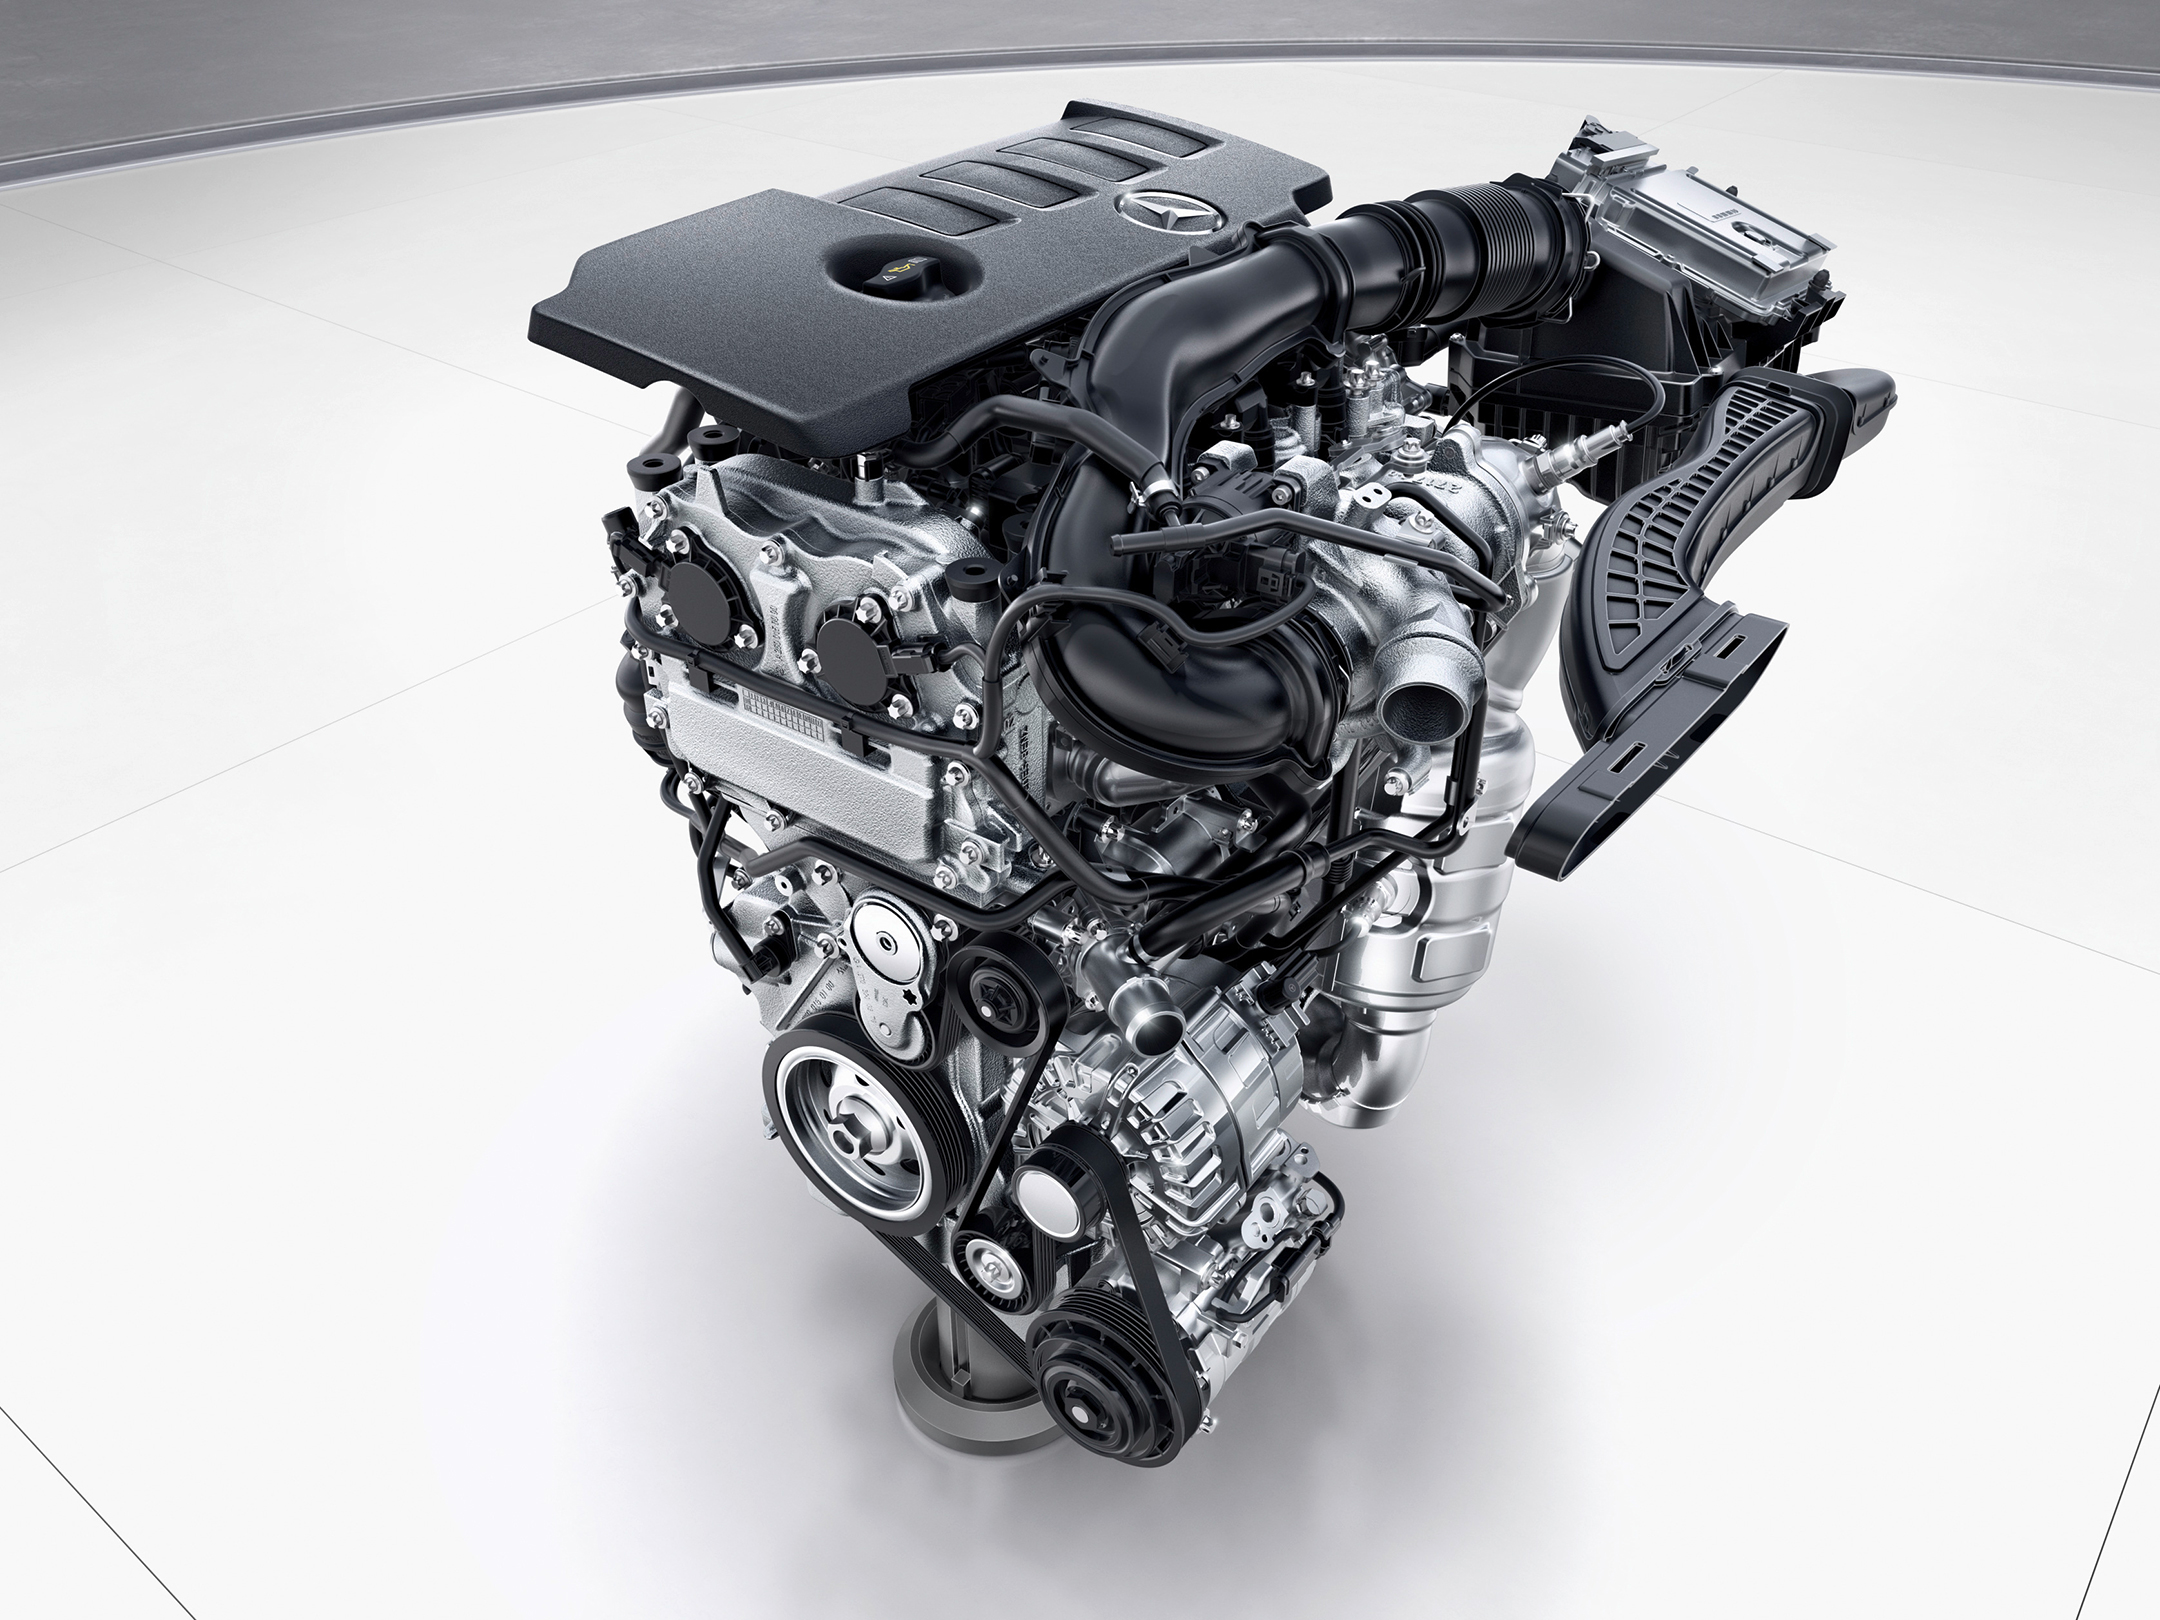 Mercedes-Benz A-Class - 2018 - engine M260 - 4-cylinder-gasoline